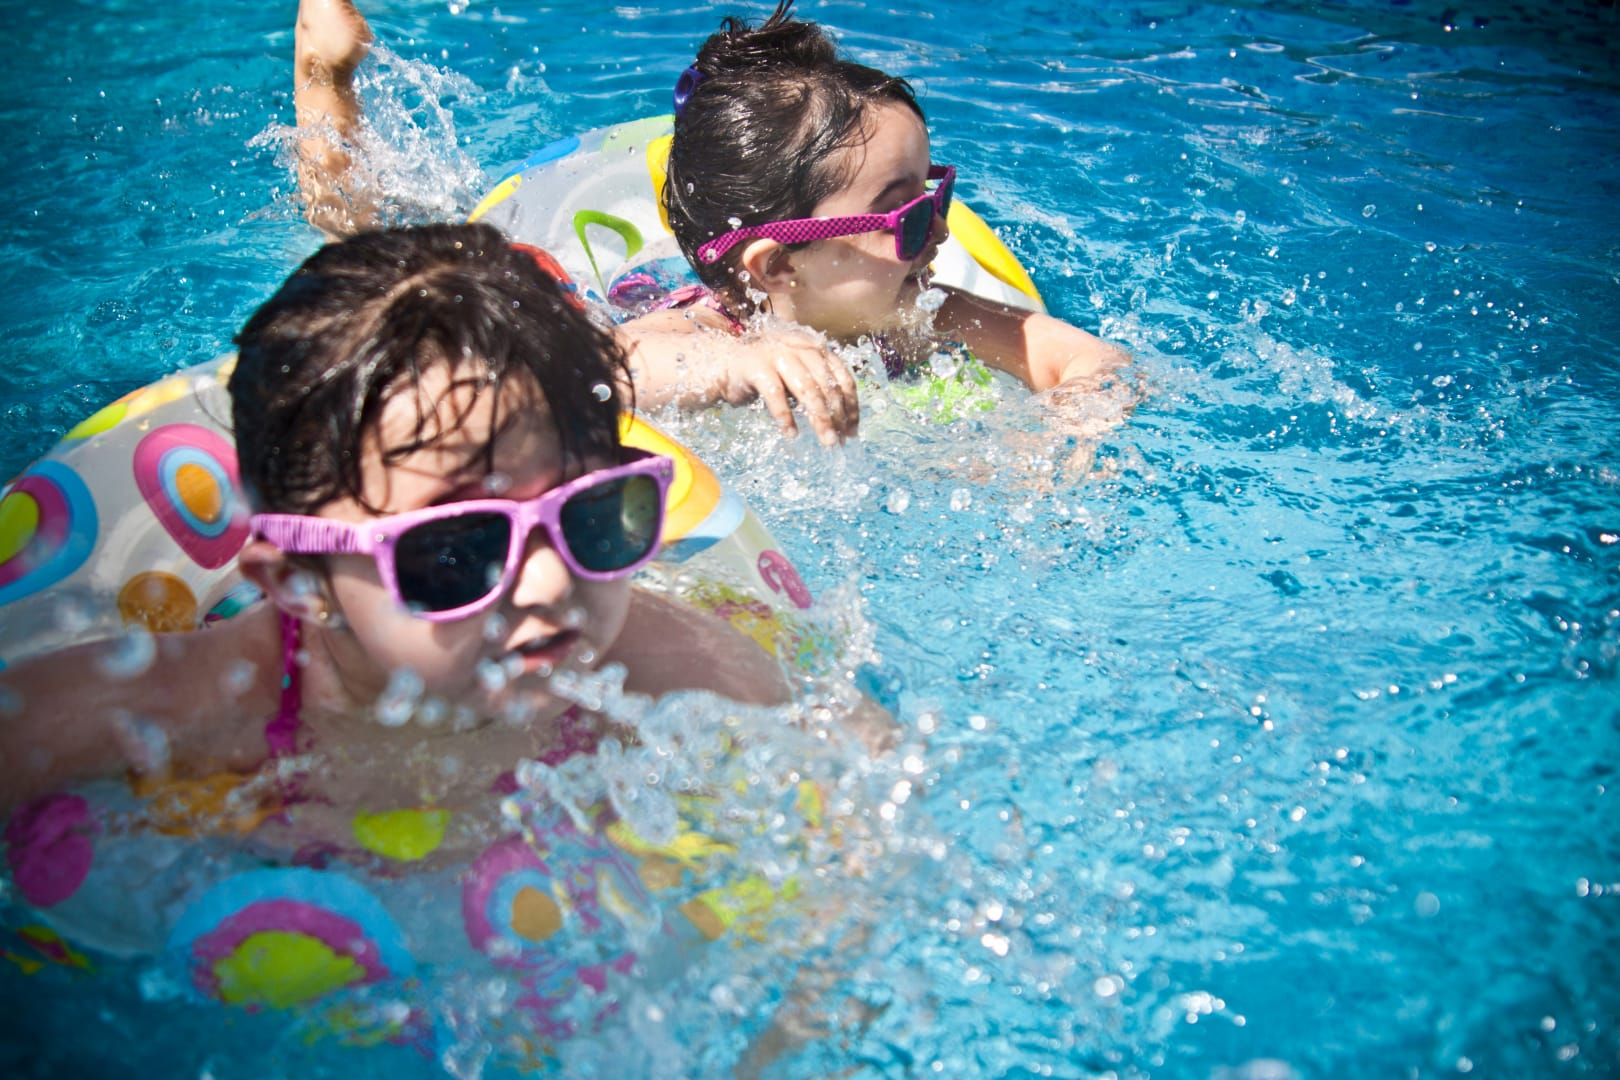 Protecting children from heat and dehydration